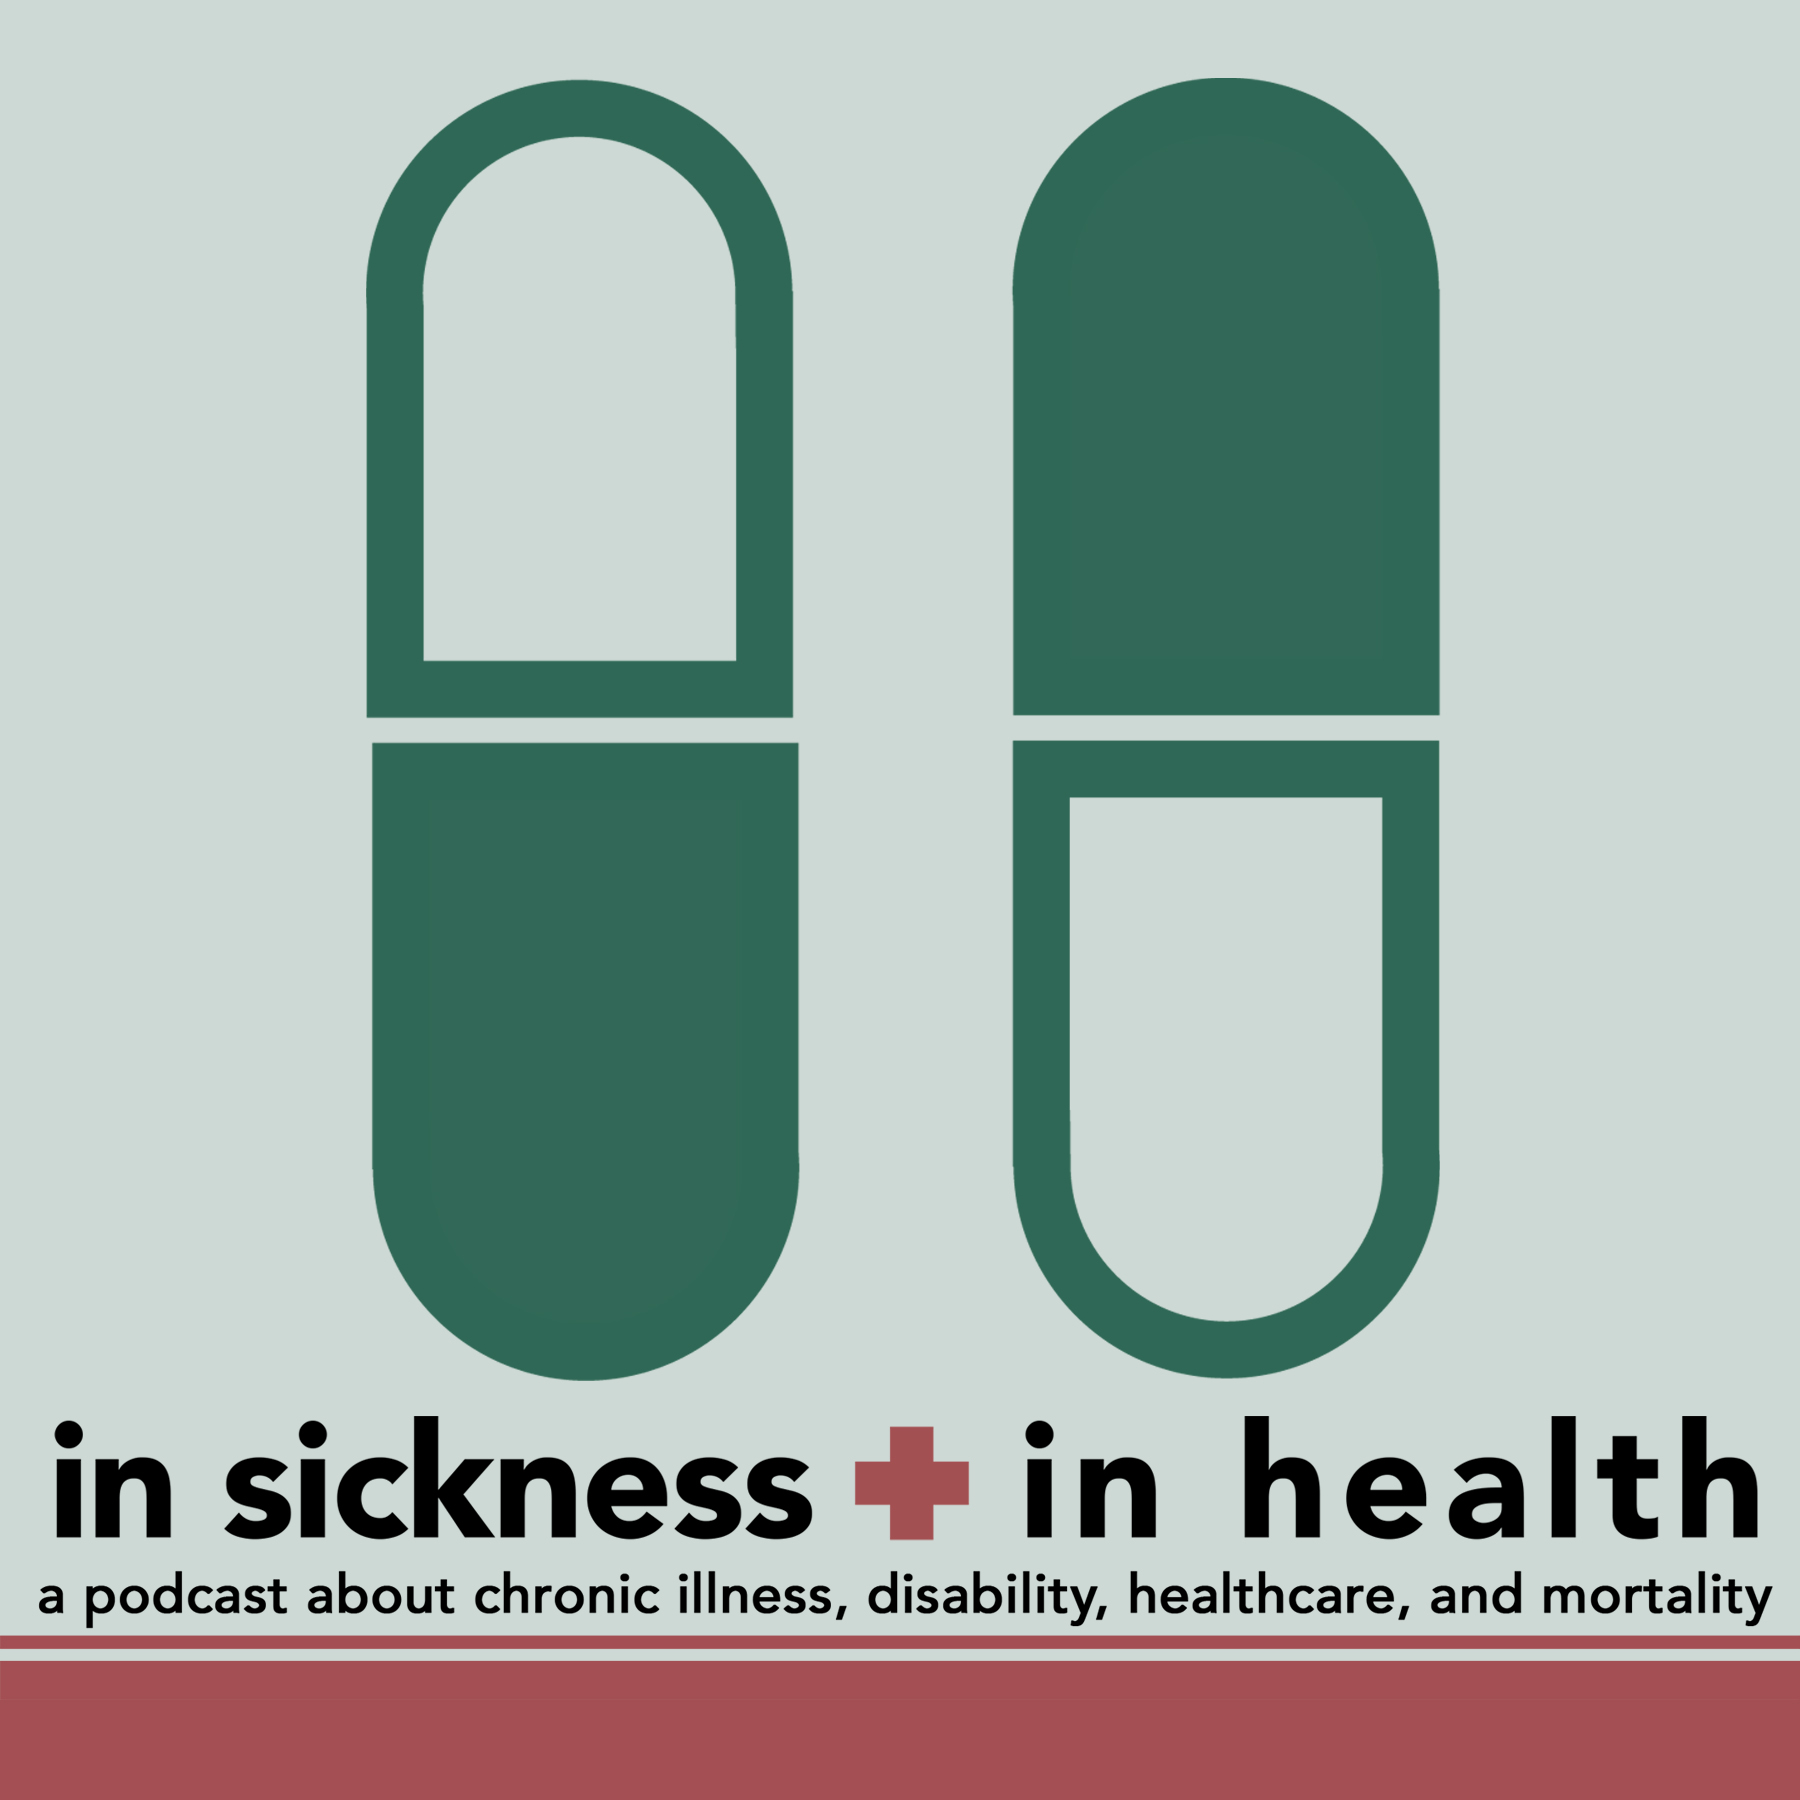 [image: two large, dark green pills on a light green background. Underneath them, there is text: 'In Sickness + In Health: a podcast about chronic illness, disability, healthcare, and mortality']